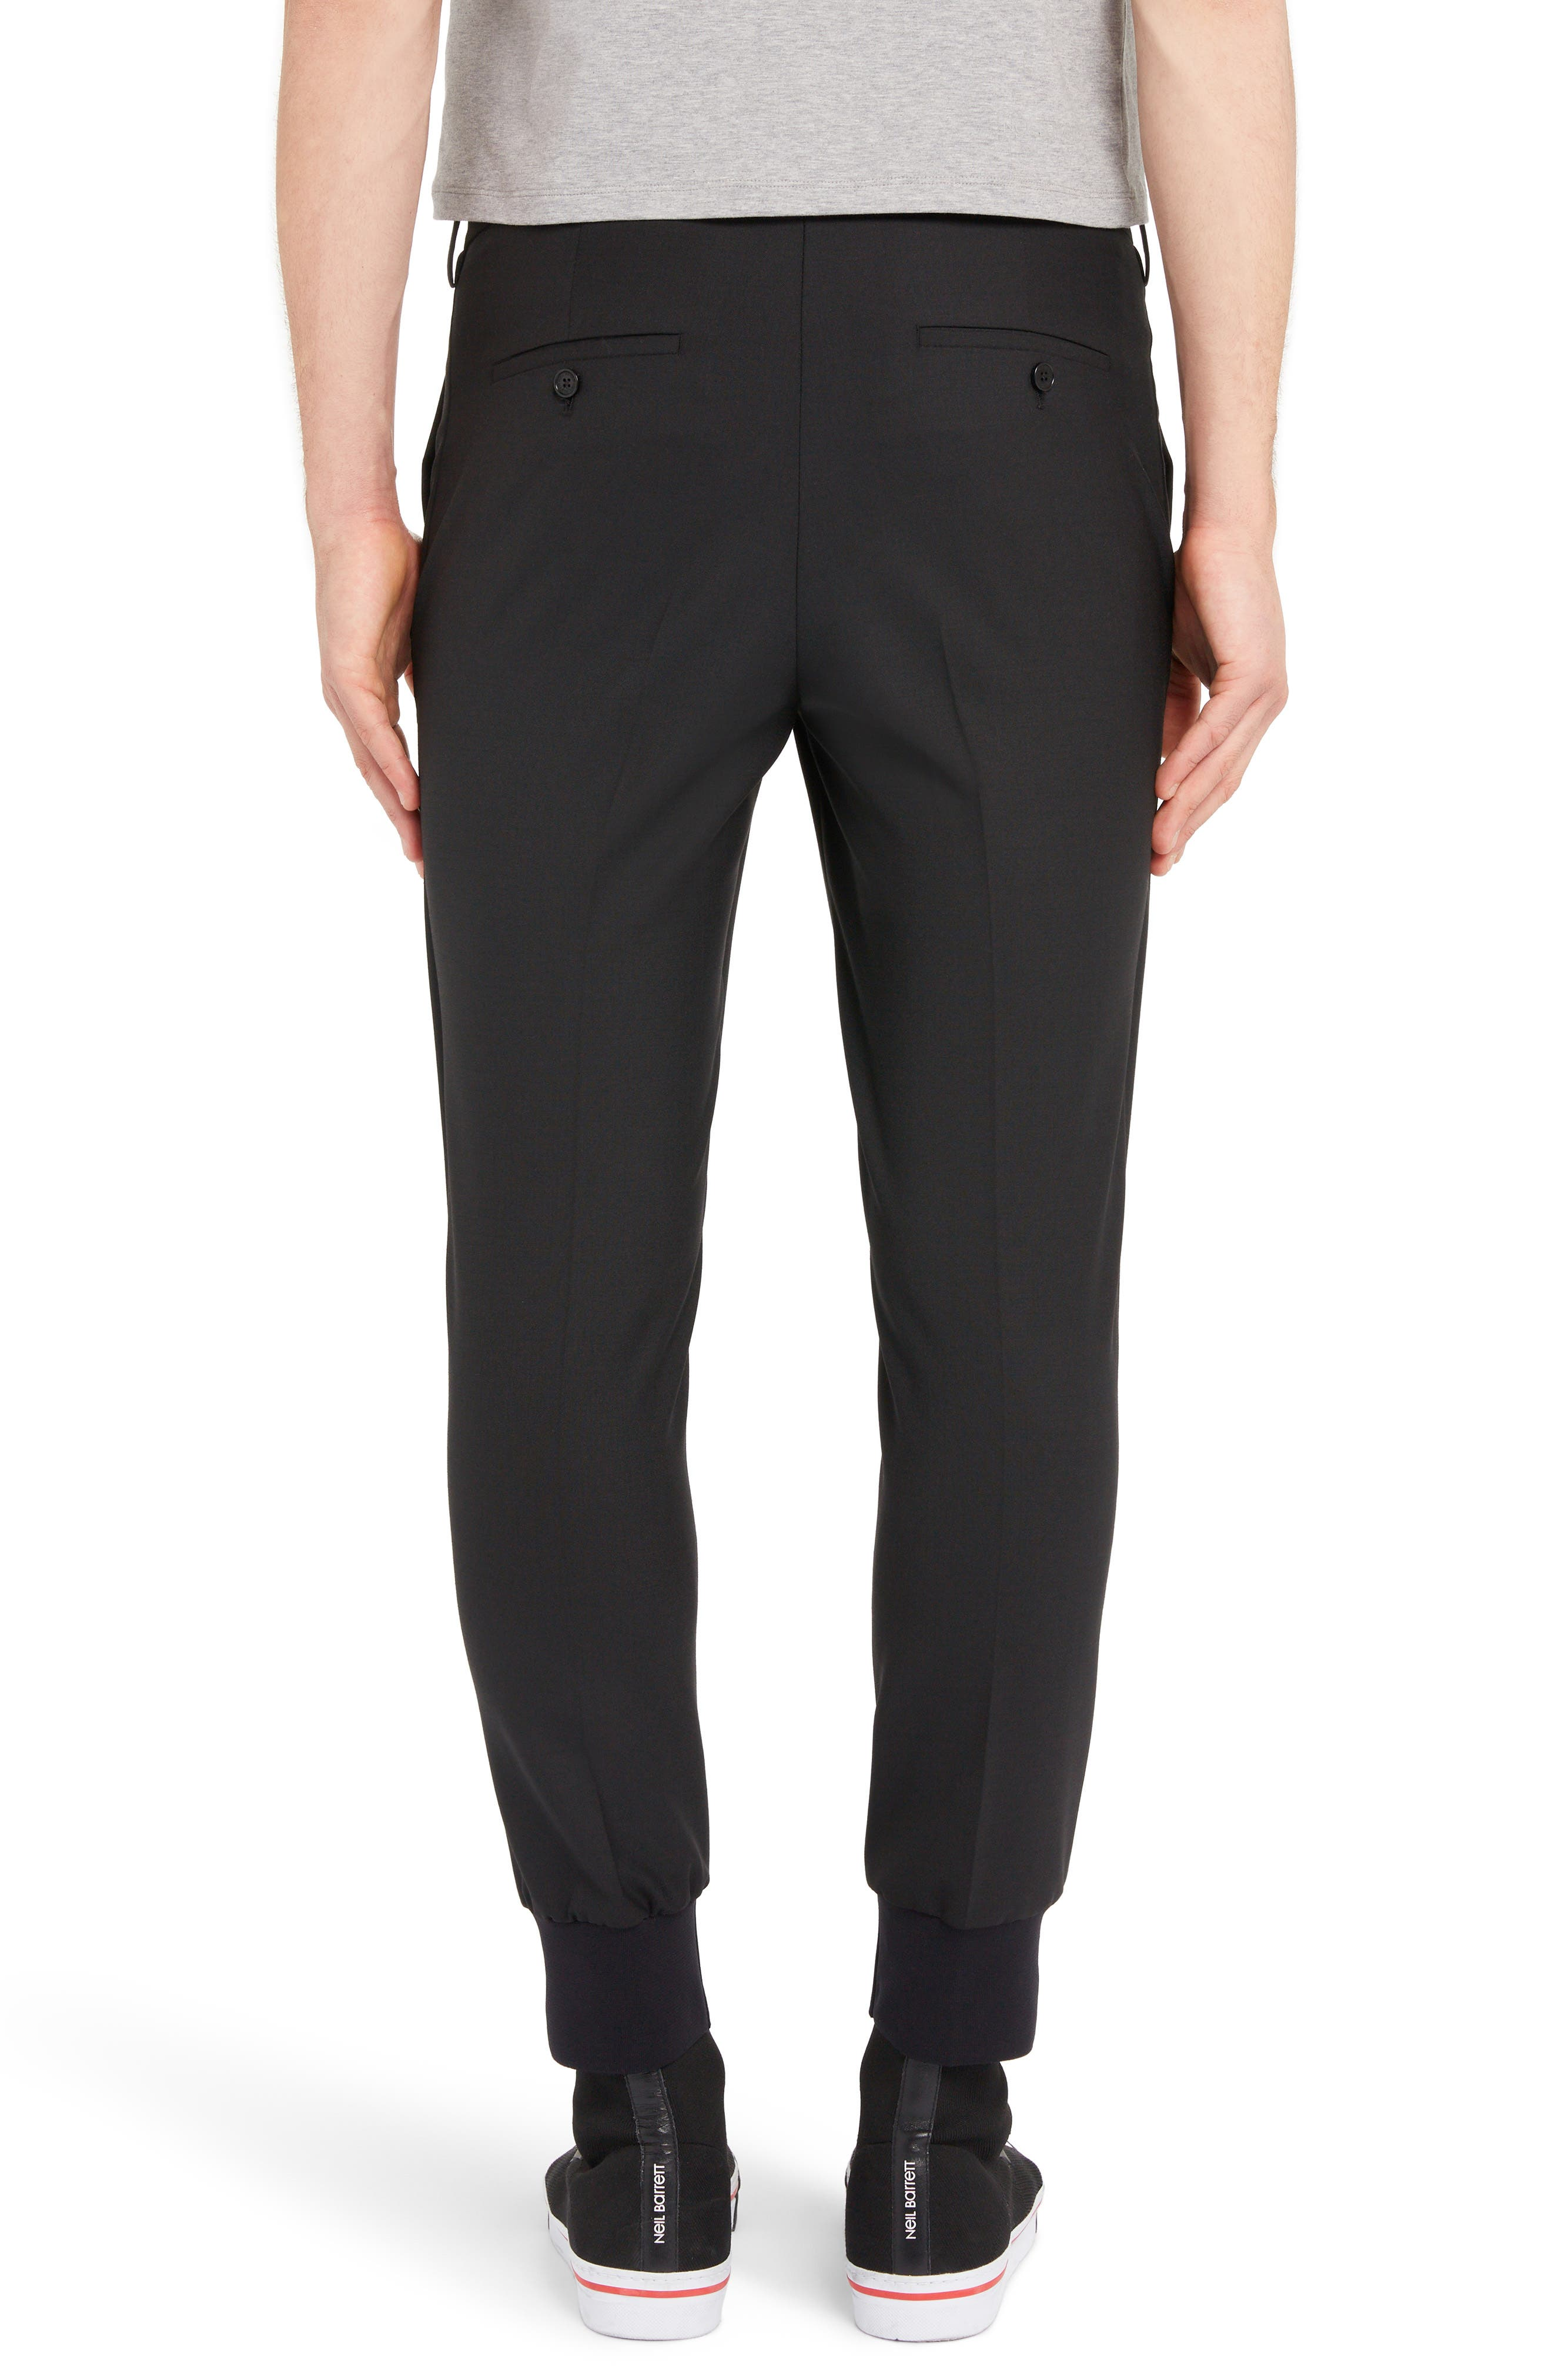 NEIL BARRETT, Ribbed Cuff Trousers, Alternate thumbnail 2, color, BLACK